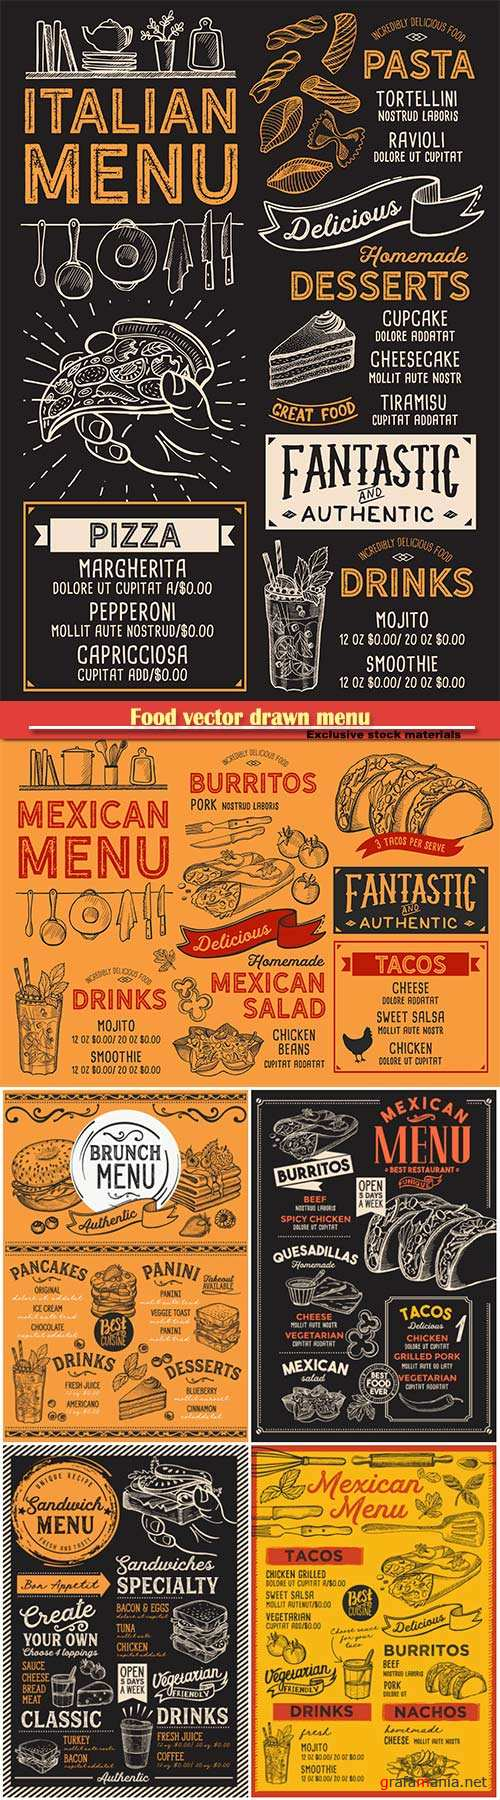 Food vector drawn menu, fast food, ice cream, cocktails, desserts, mexican food